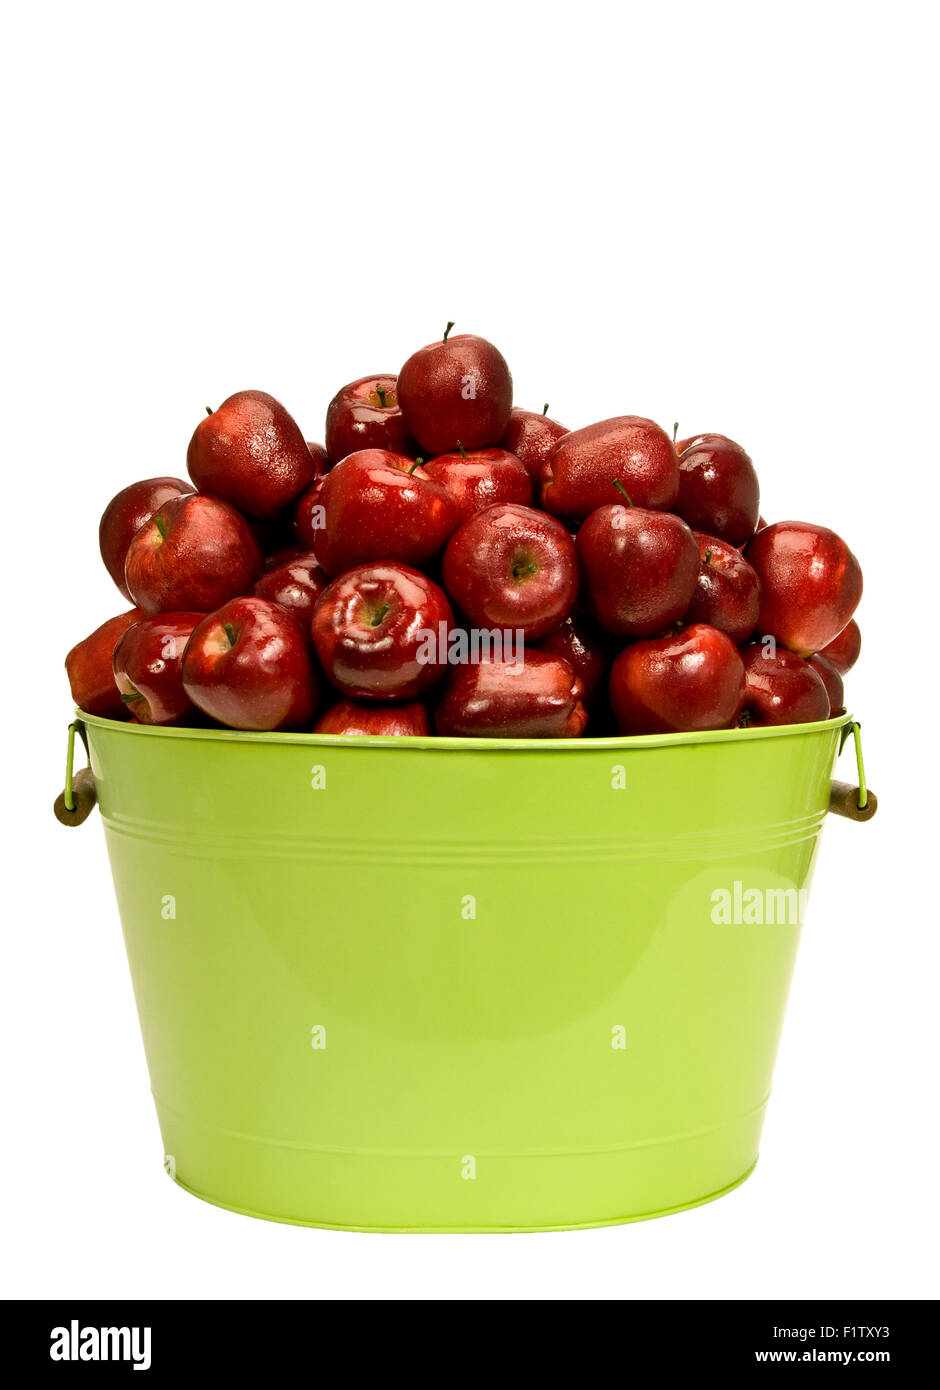 Glistening Dew Covered Red Delicious Apples Piled High In Large Bucket Isolated on White Background - Stock Image